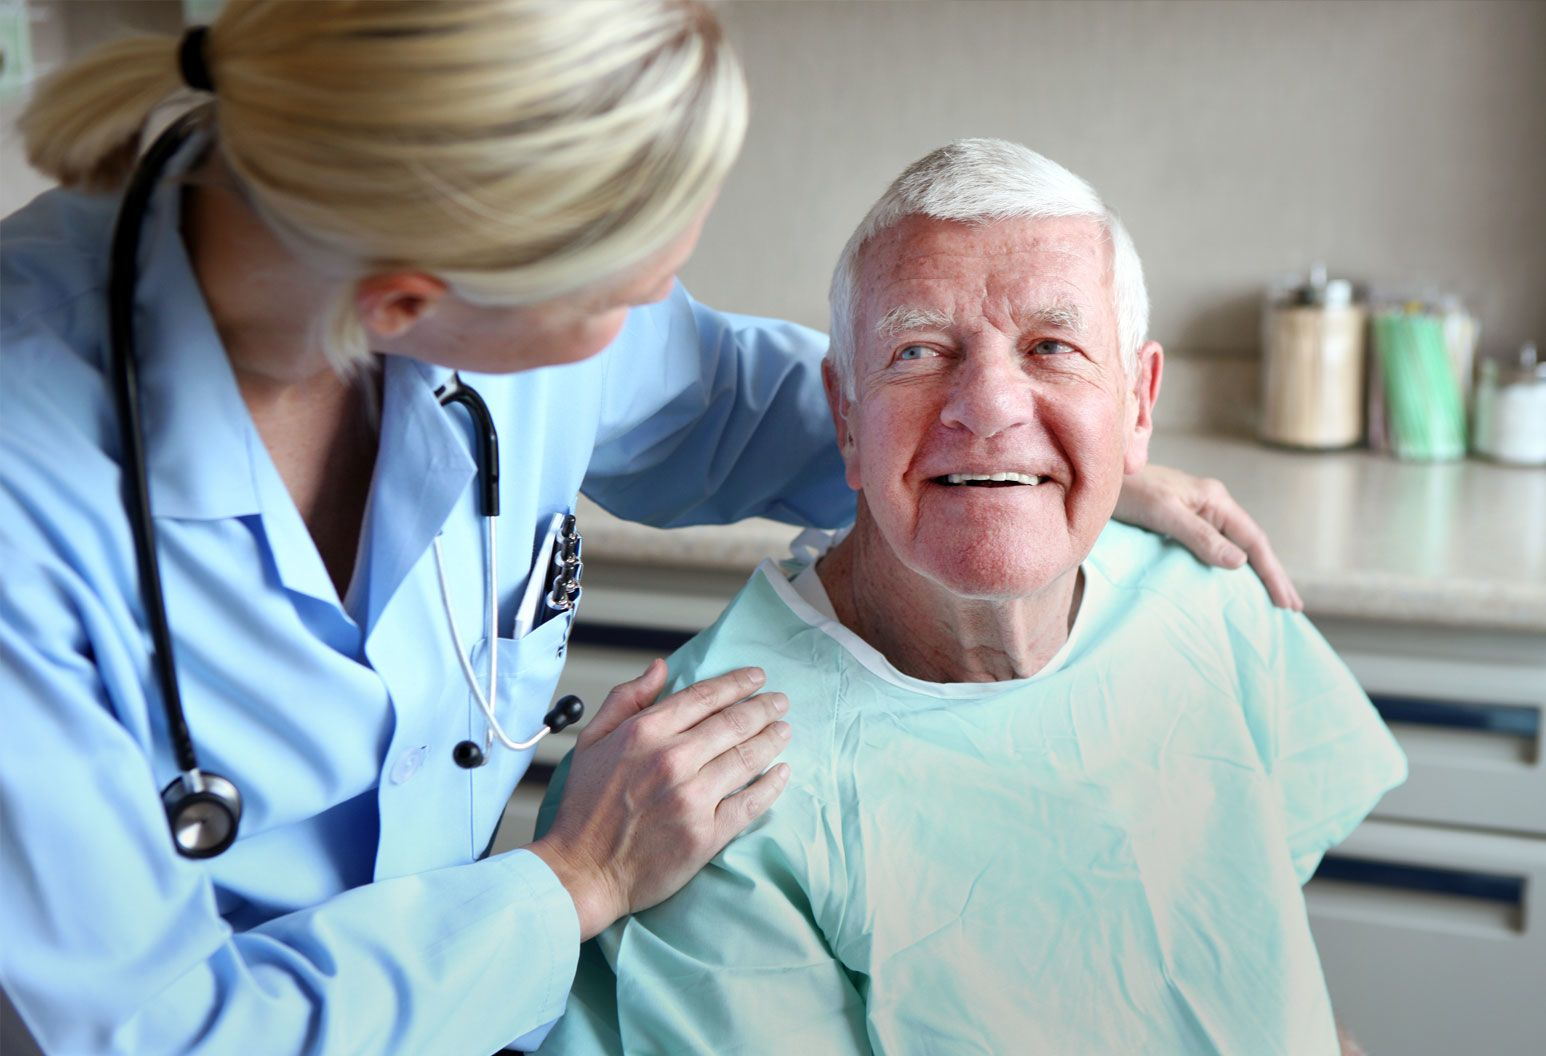 Blonde female doctor with stethoscope around her neck gently holds shoulders of smiling, older male patient in paper gown